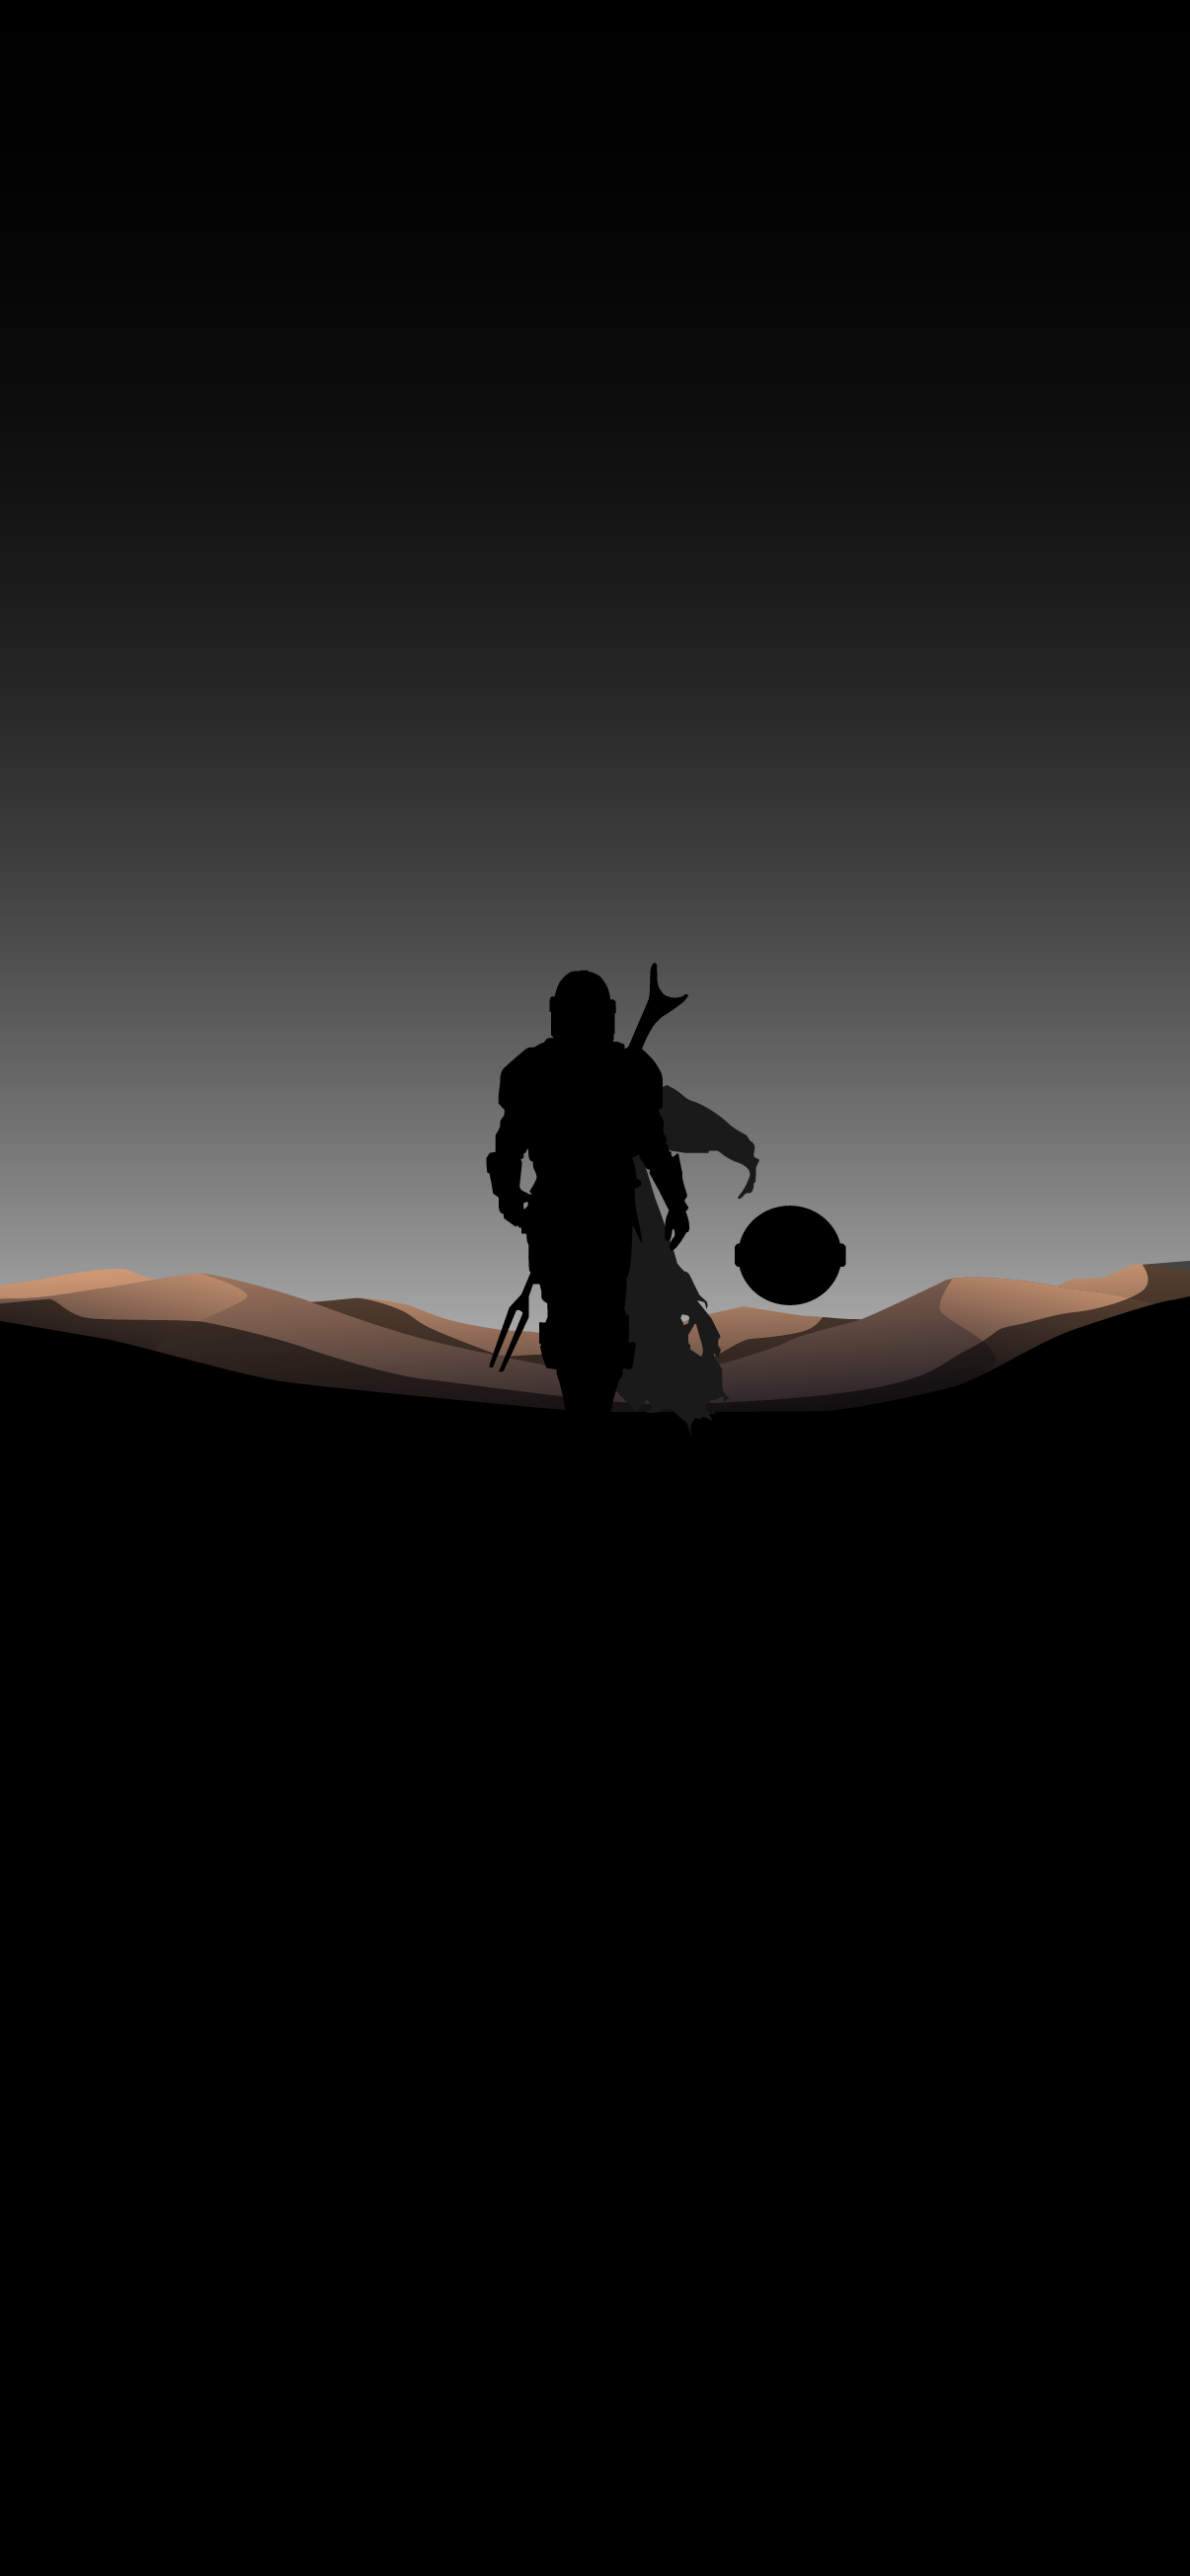 cool amoled wallpaper of the mandalorian and baby yoda the child